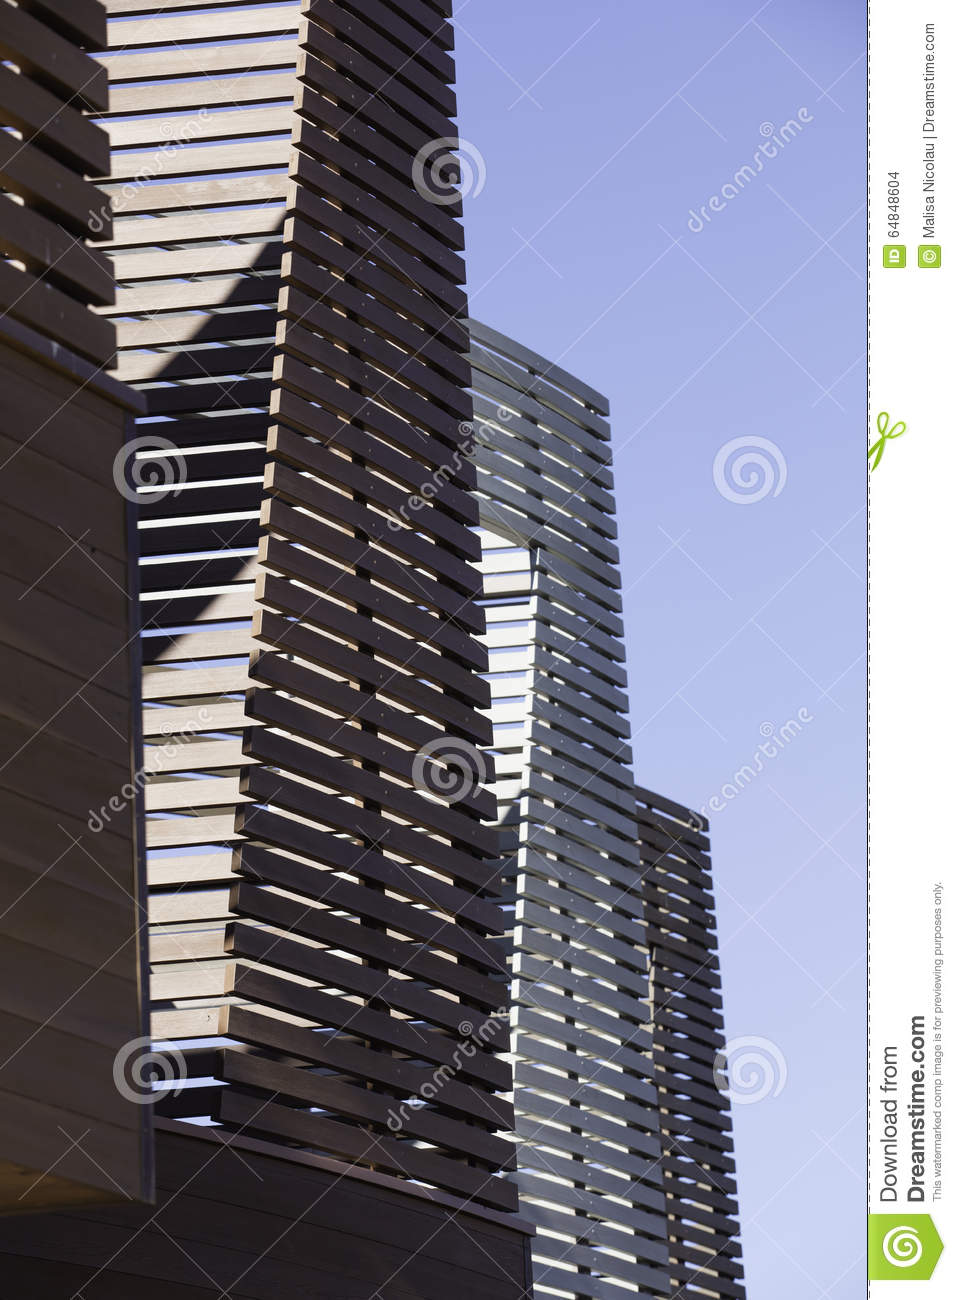 Vertical And Horizontal Line Details In Architecture On A Buildi Stock Photo